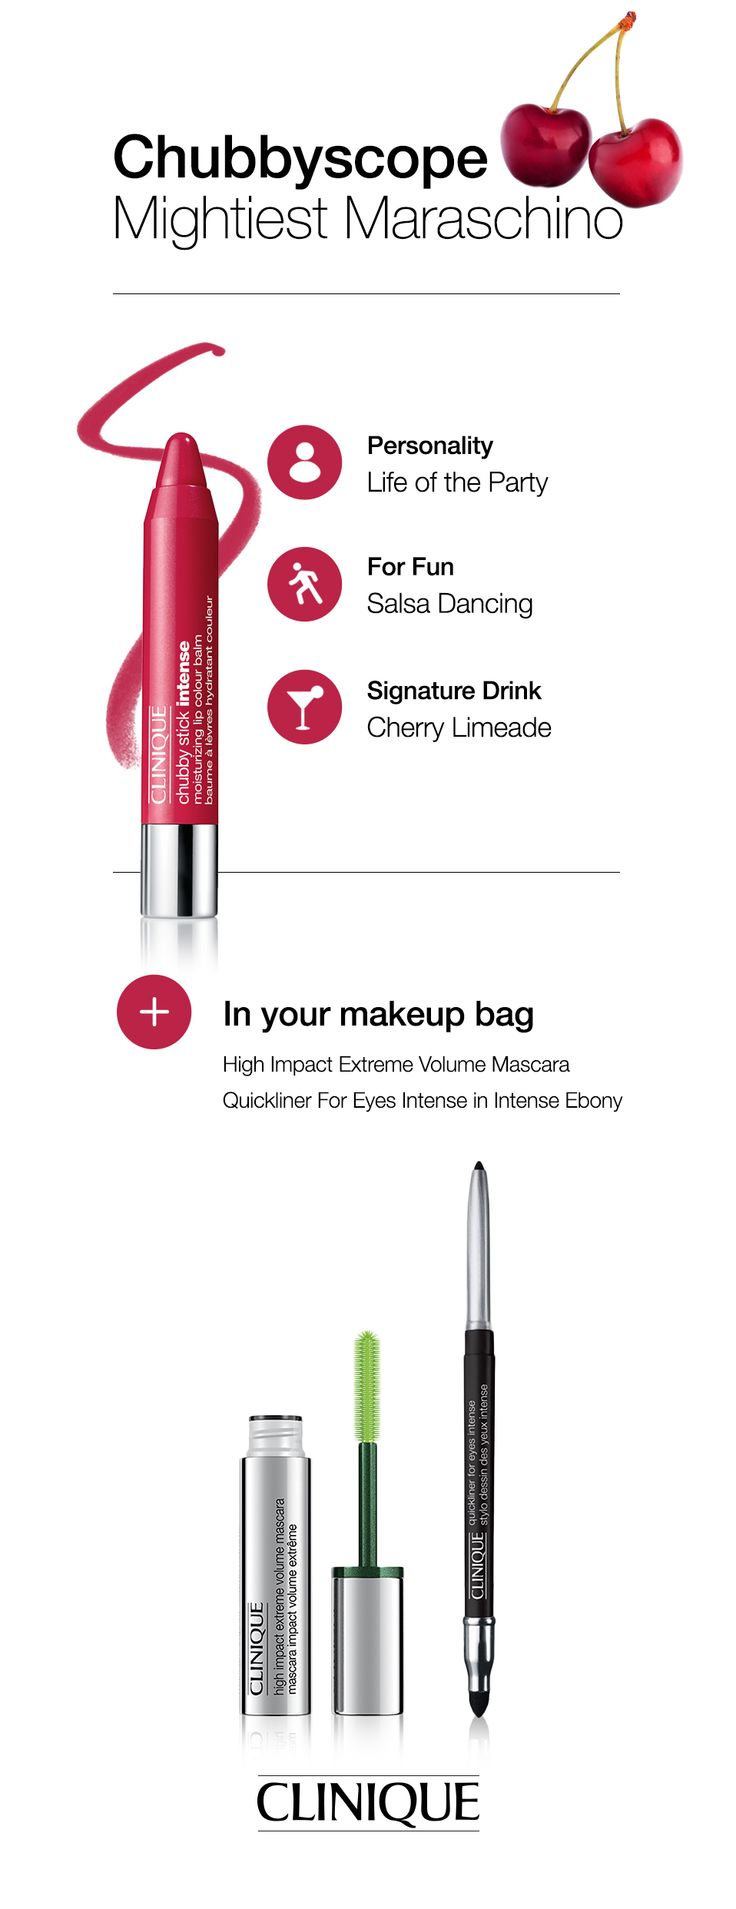 What does your favourite Chubby Stick say about you? Like a horoscope, there's a Chubbyscope for every personality. #Clinique #ChubbyStick #MightiestMaraschino